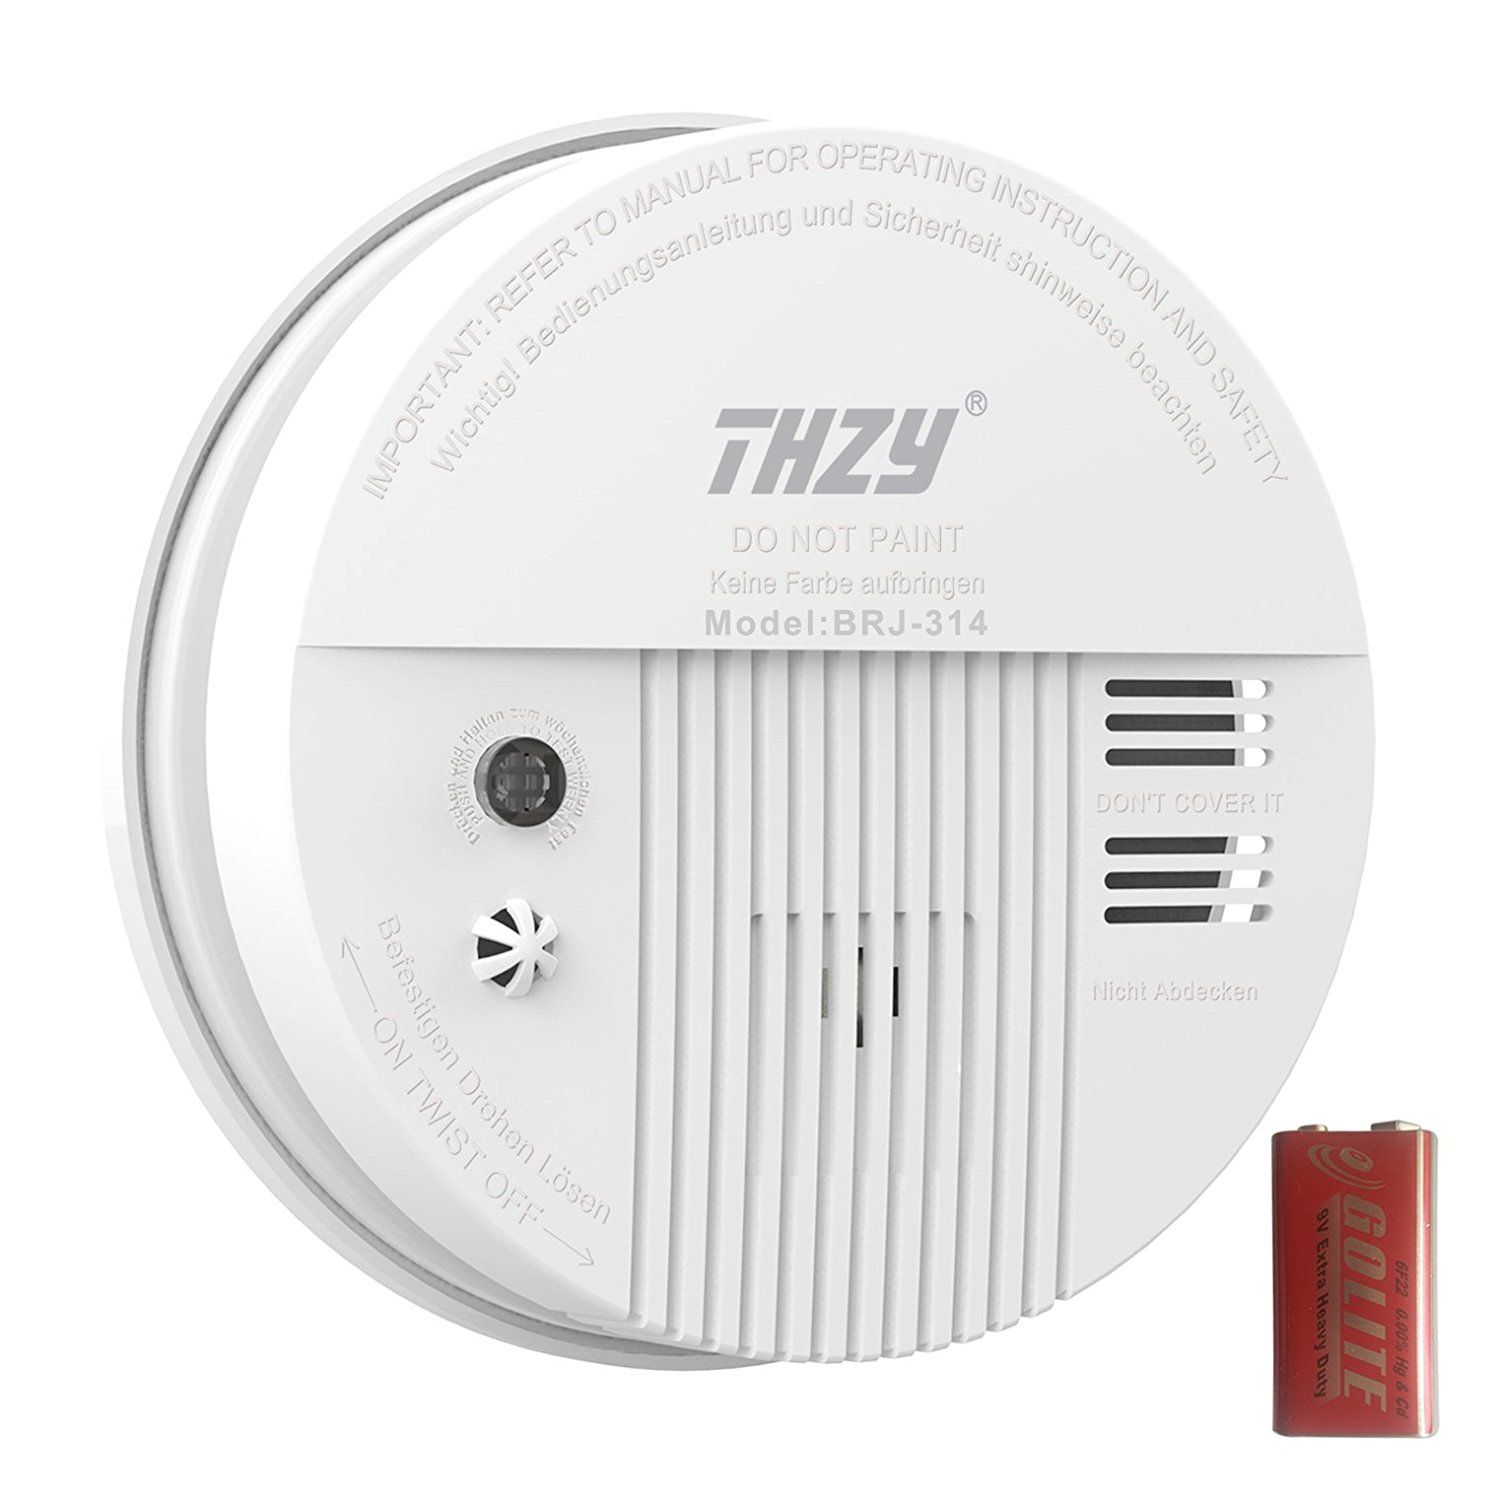 Smoke Carbon Monoxide Alarm Thzy Battery Operated Carbon